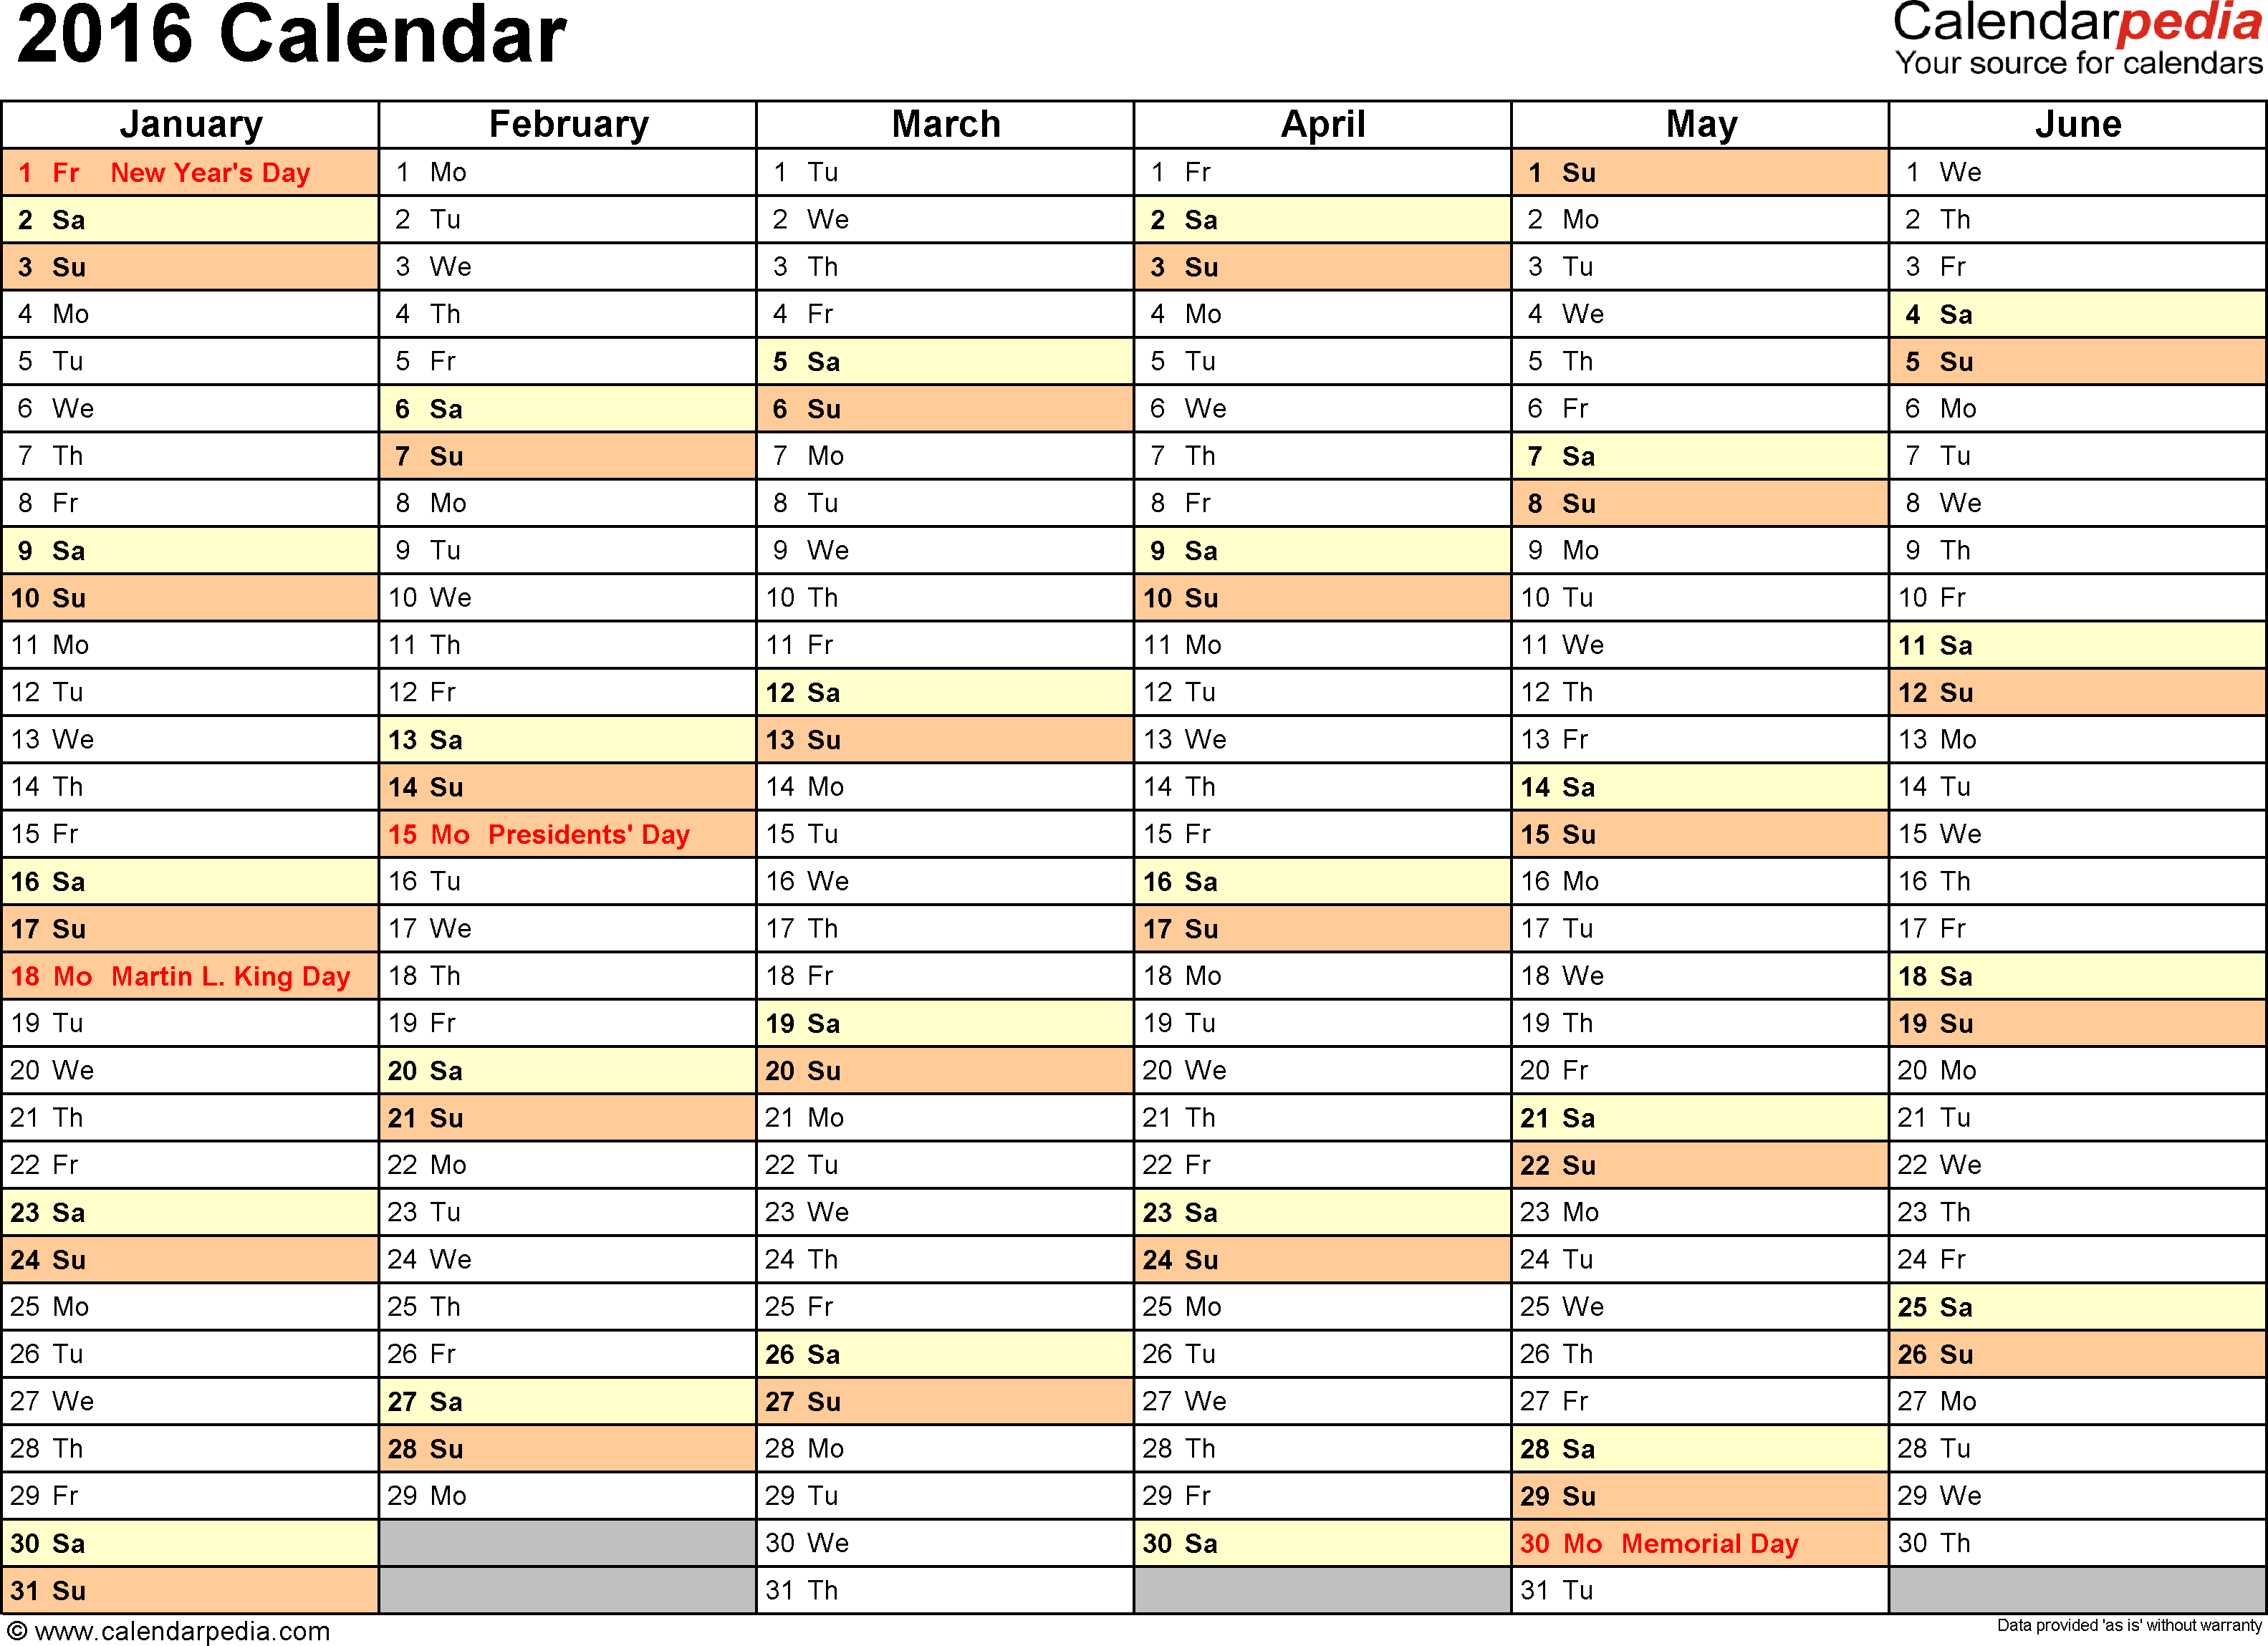 Ediblewildsus  Remarkable  Calendar  Download  Free Printable Excel Templates Xls With Interesting Template   Calendar For Excel Months Horizontally  Pages Landscape Orientation With Amazing Dave Ramsey Budget Spreadsheet Excel Free Also Add Check Box In Excel In Addition Square Root Function Excel And Excel What Is A Pivot Table As Well As Excel Spreadsheets Templates Additionally Excel Printing Too Small From Calendarpediacom With Ediblewildsus  Interesting  Calendar  Download  Free Printable Excel Templates Xls With Amazing Template   Calendar For Excel Months Horizontally  Pages Landscape Orientation And Remarkable Dave Ramsey Budget Spreadsheet Excel Free Also Add Check Box In Excel In Addition Square Root Function Excel From Calendarpediacom